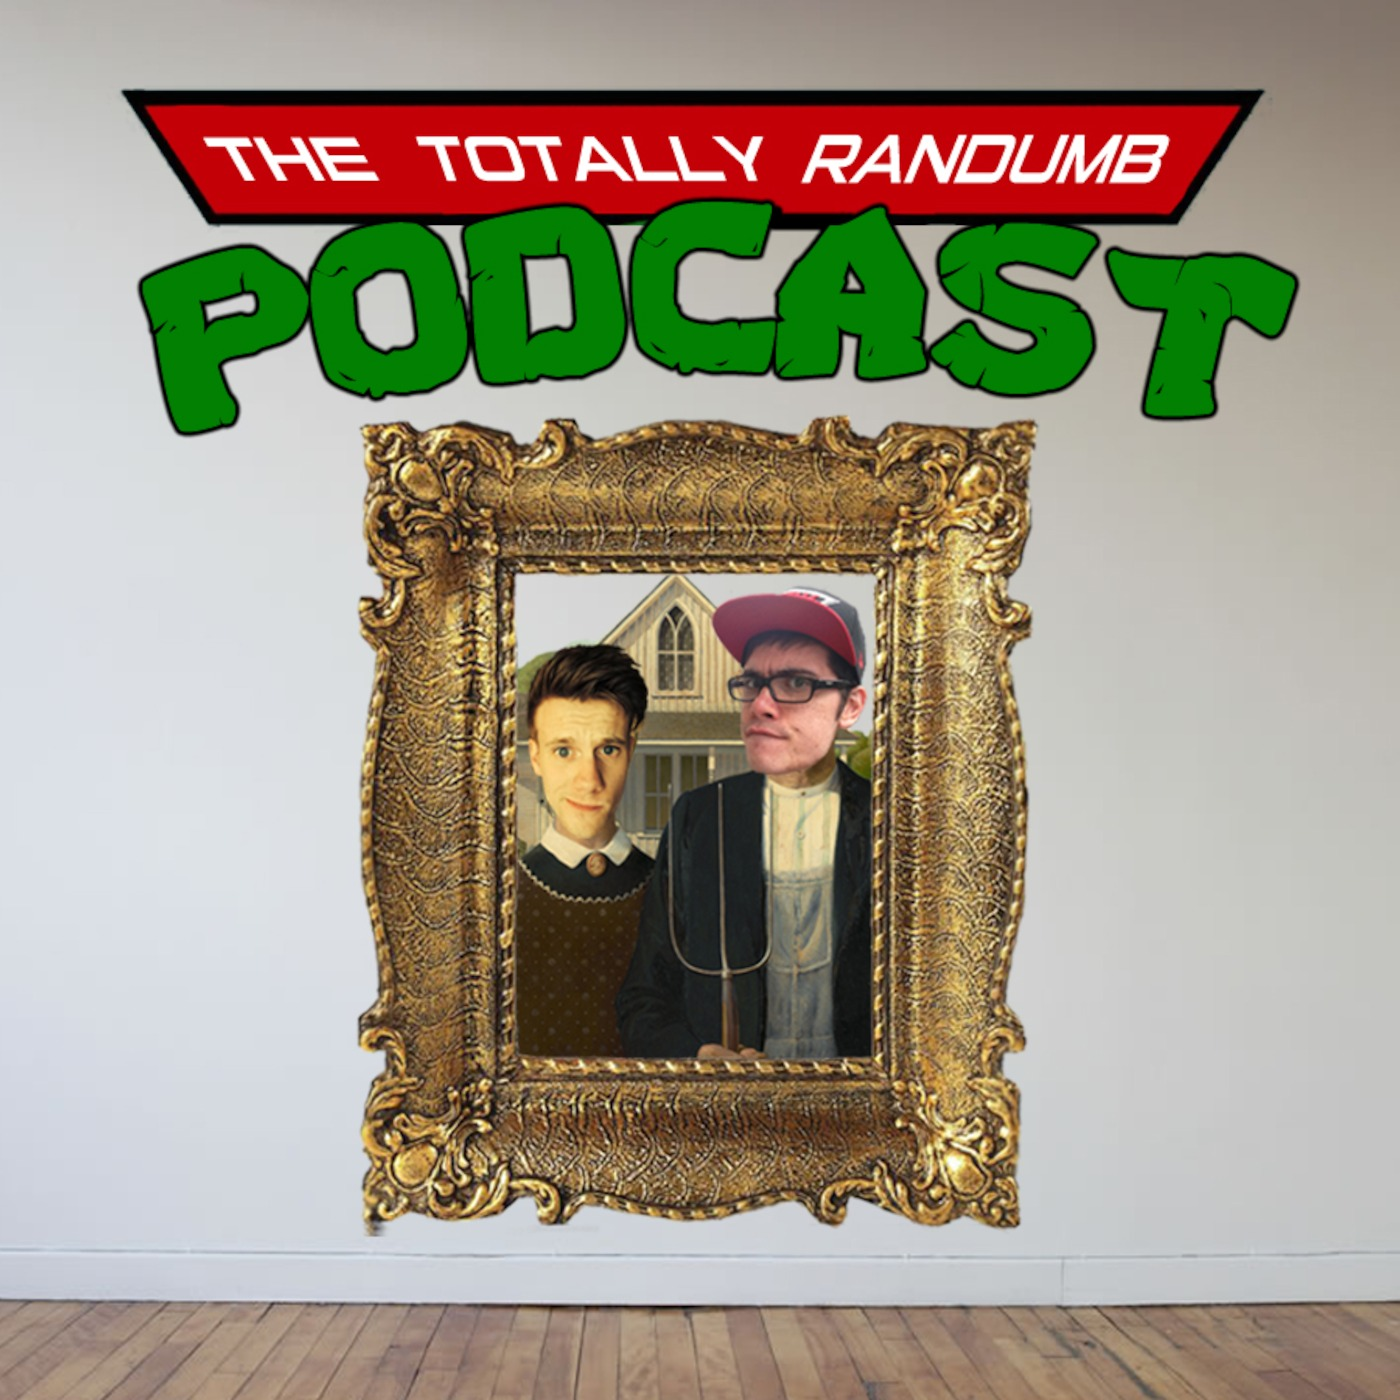 The Totally RanDumb Podcast